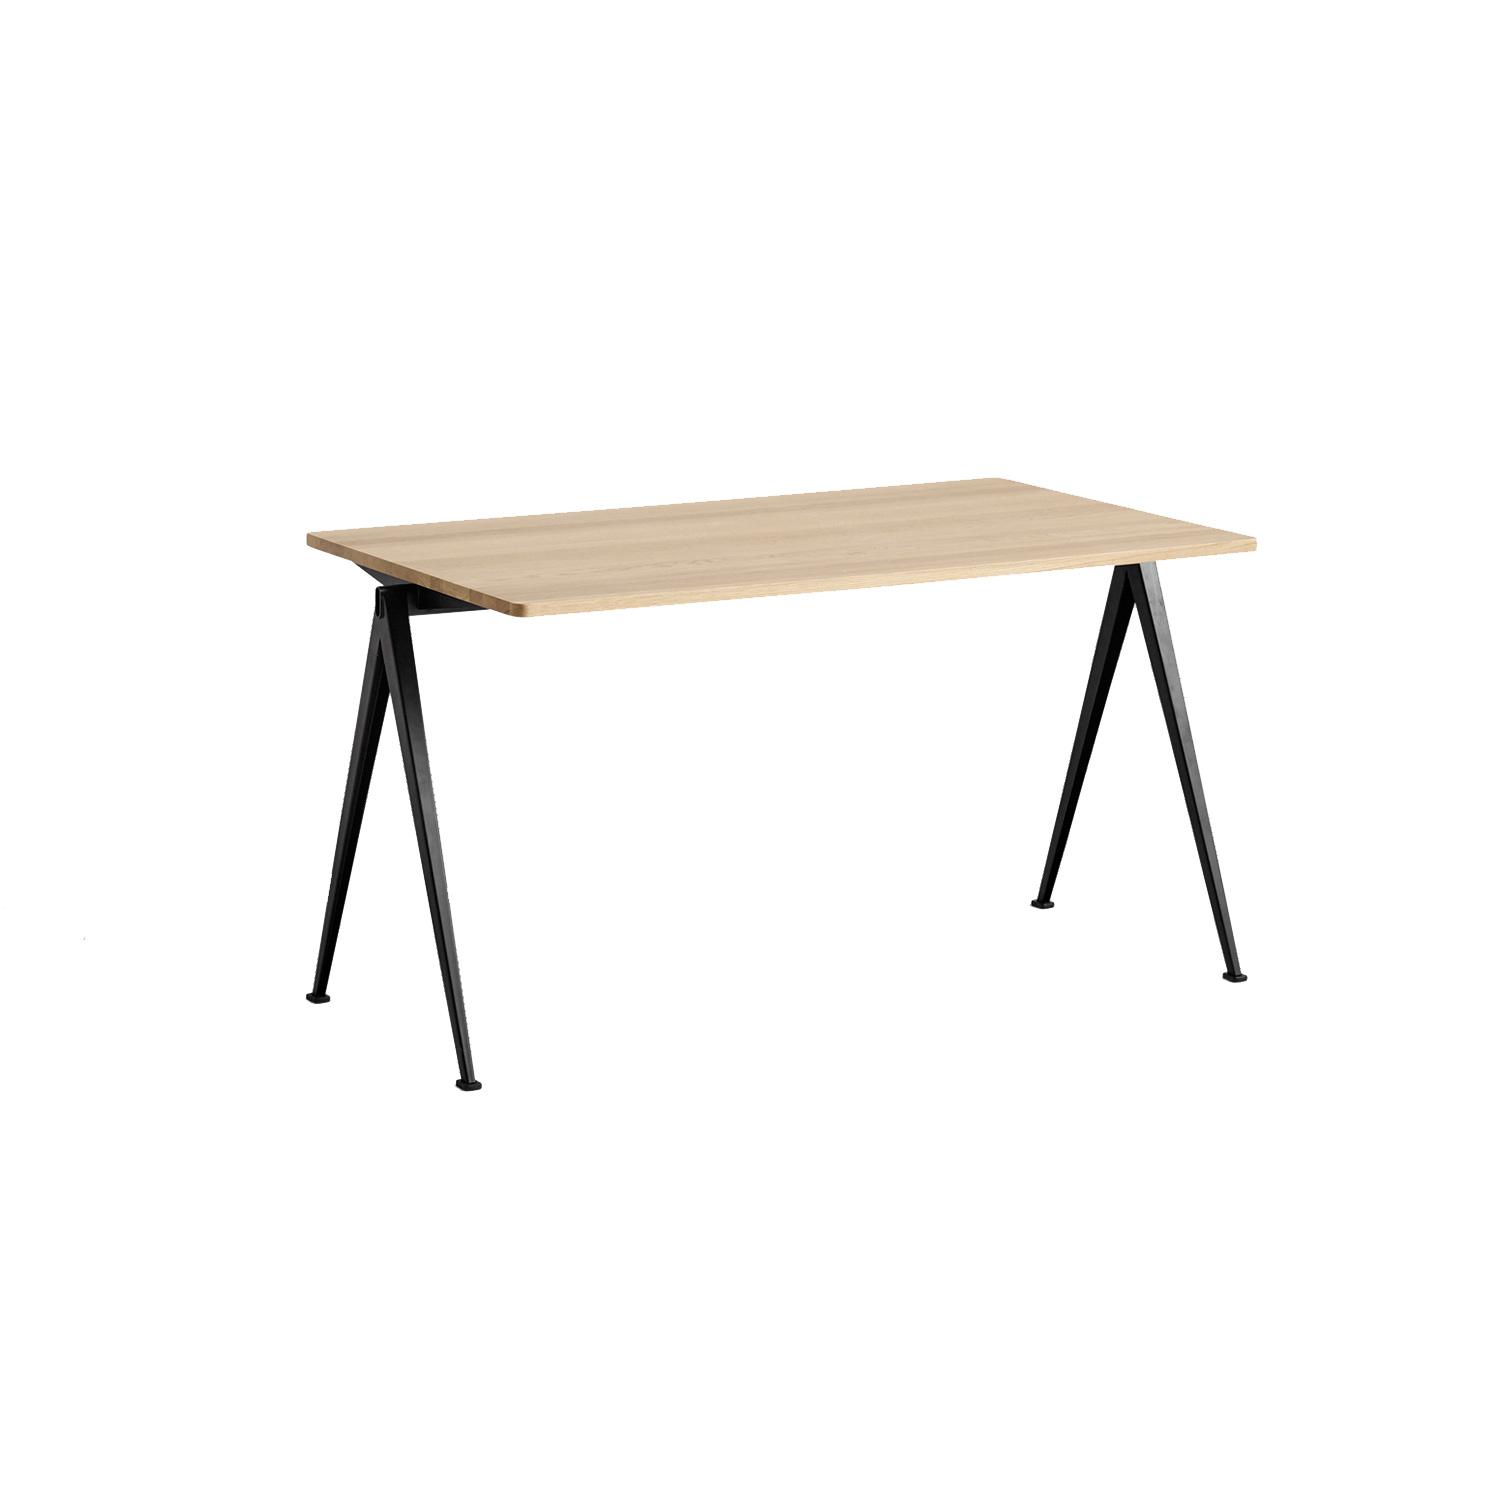 Pyramid desk 01 140x75, black frame/matt